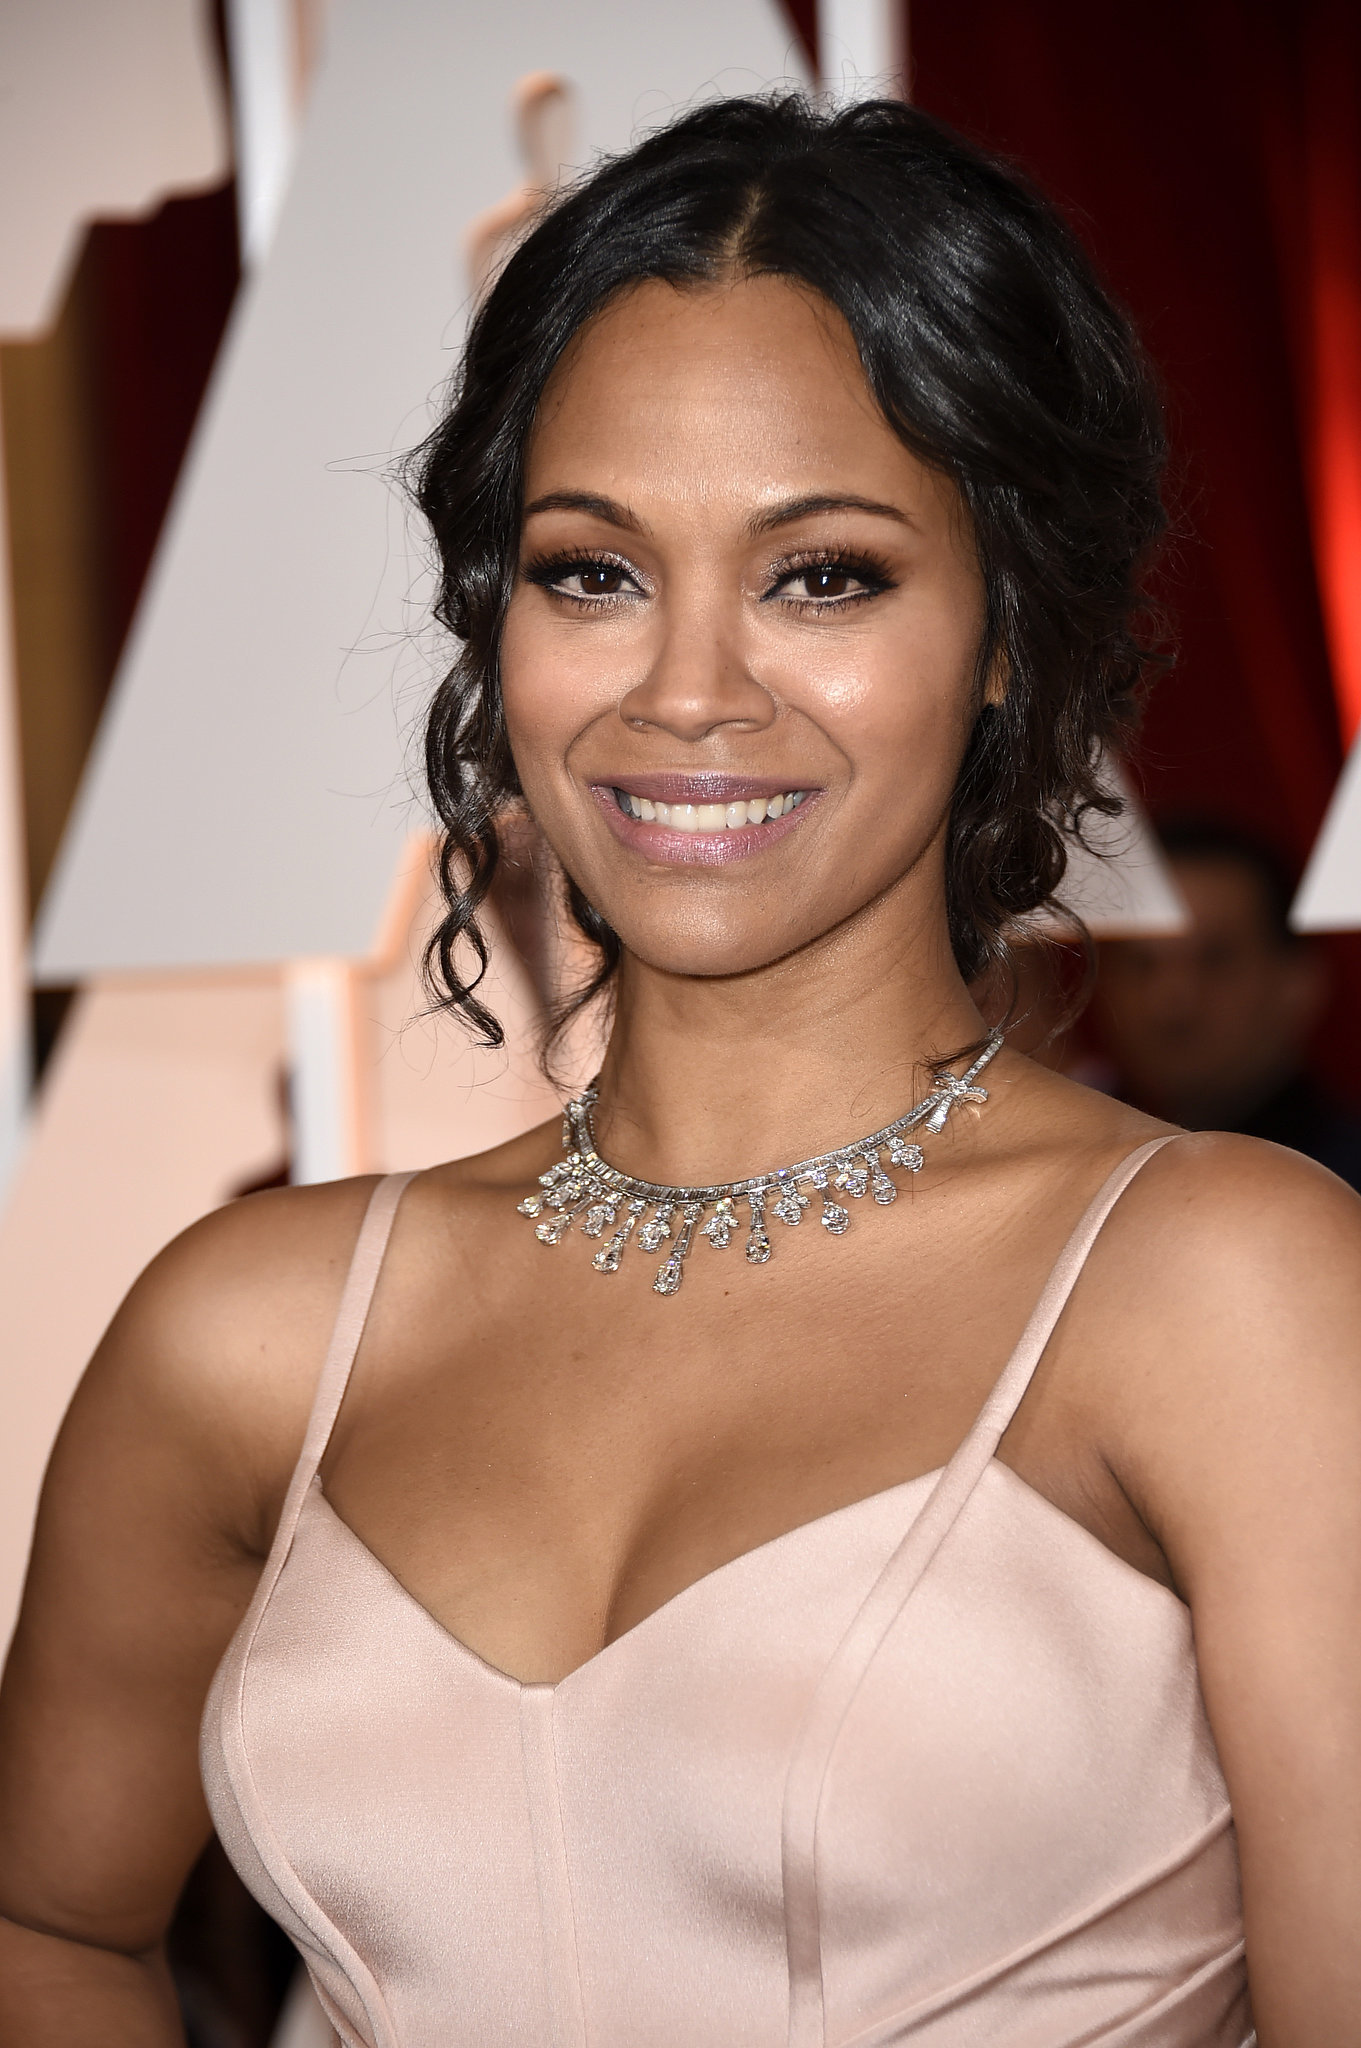 46360 likewise Zoe Saldana as well Wear Oscars additionally Oscars 2017 Red Carpet Dresses Best Dressed Celebrities At Oscars as well Oscars Movie Award 743531. on oscars academy awards